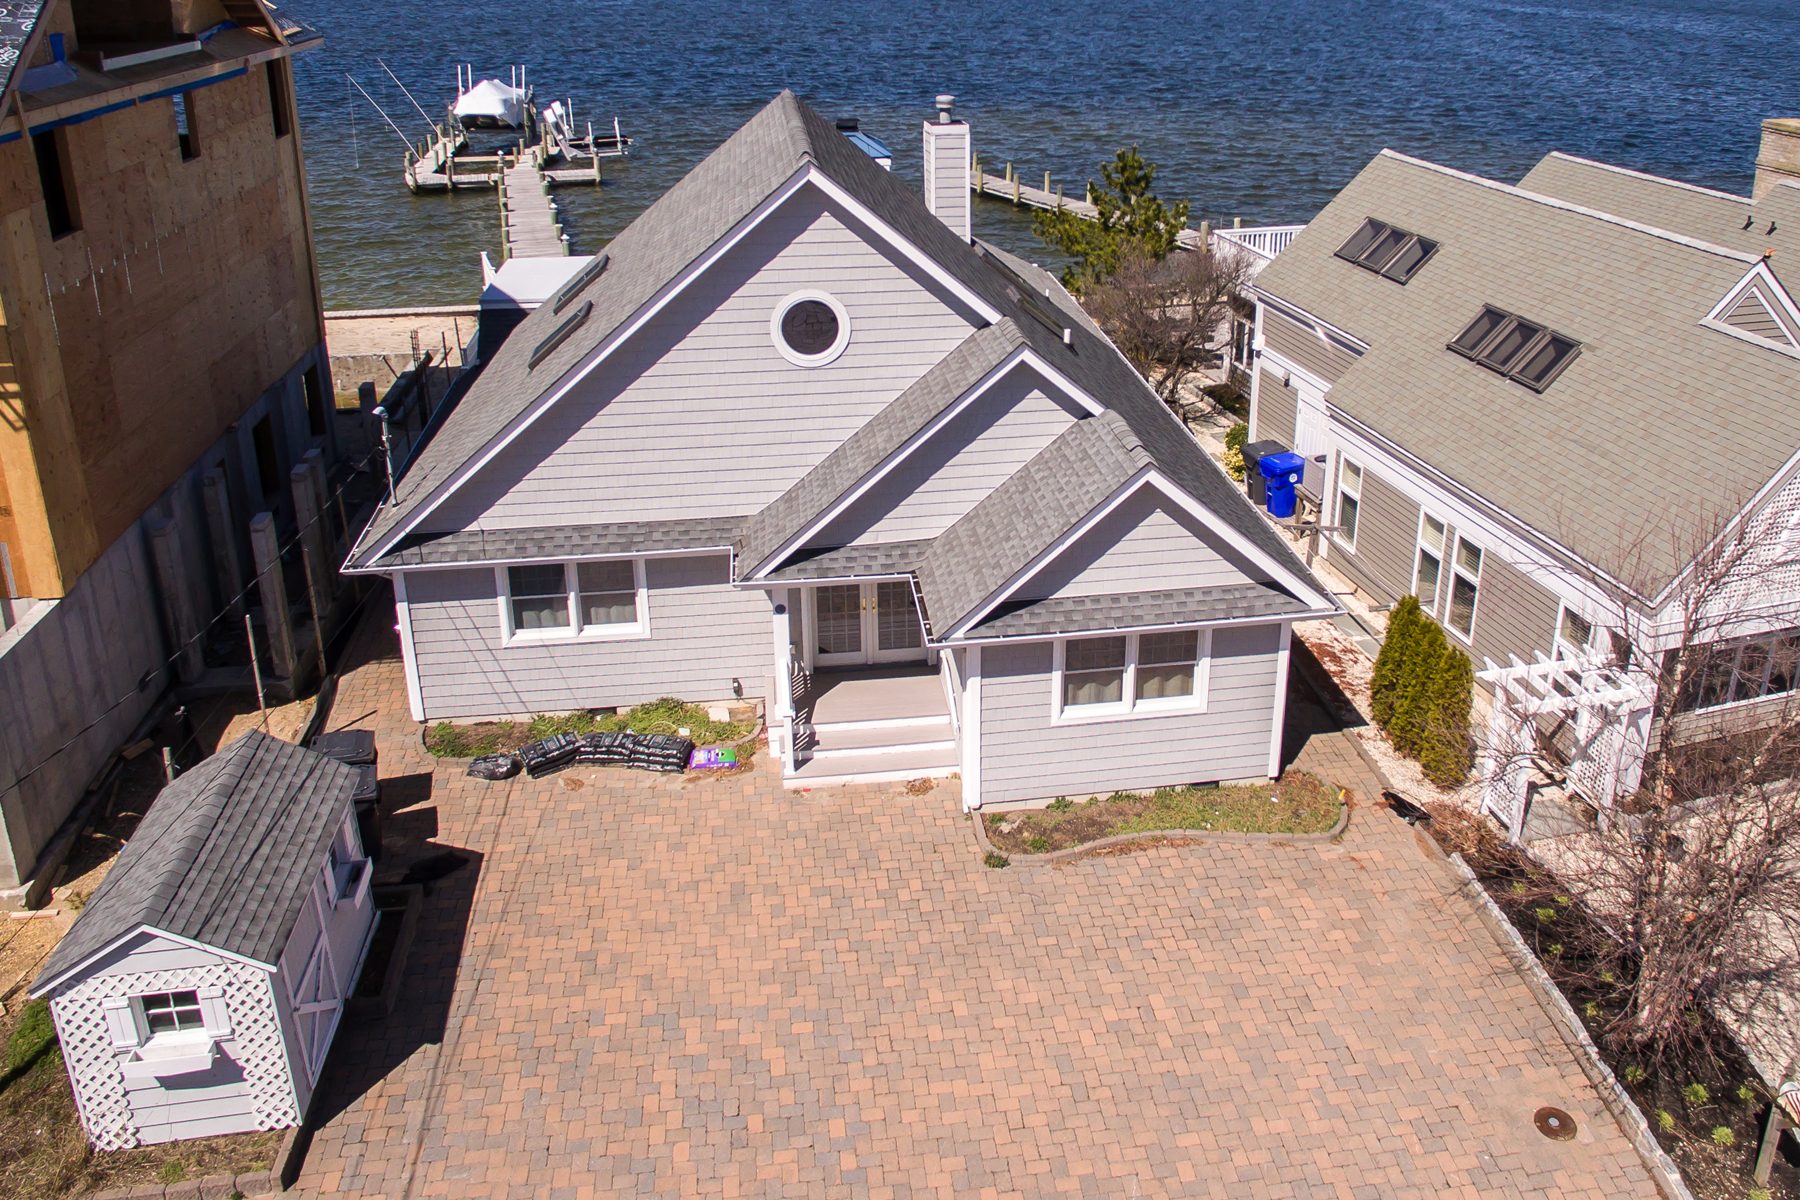 Single Family Home for Sale at Stunning Cape-Style Bayfront Home 505 Normandy Drive Normandy Beach, New Jersey 08739 United States